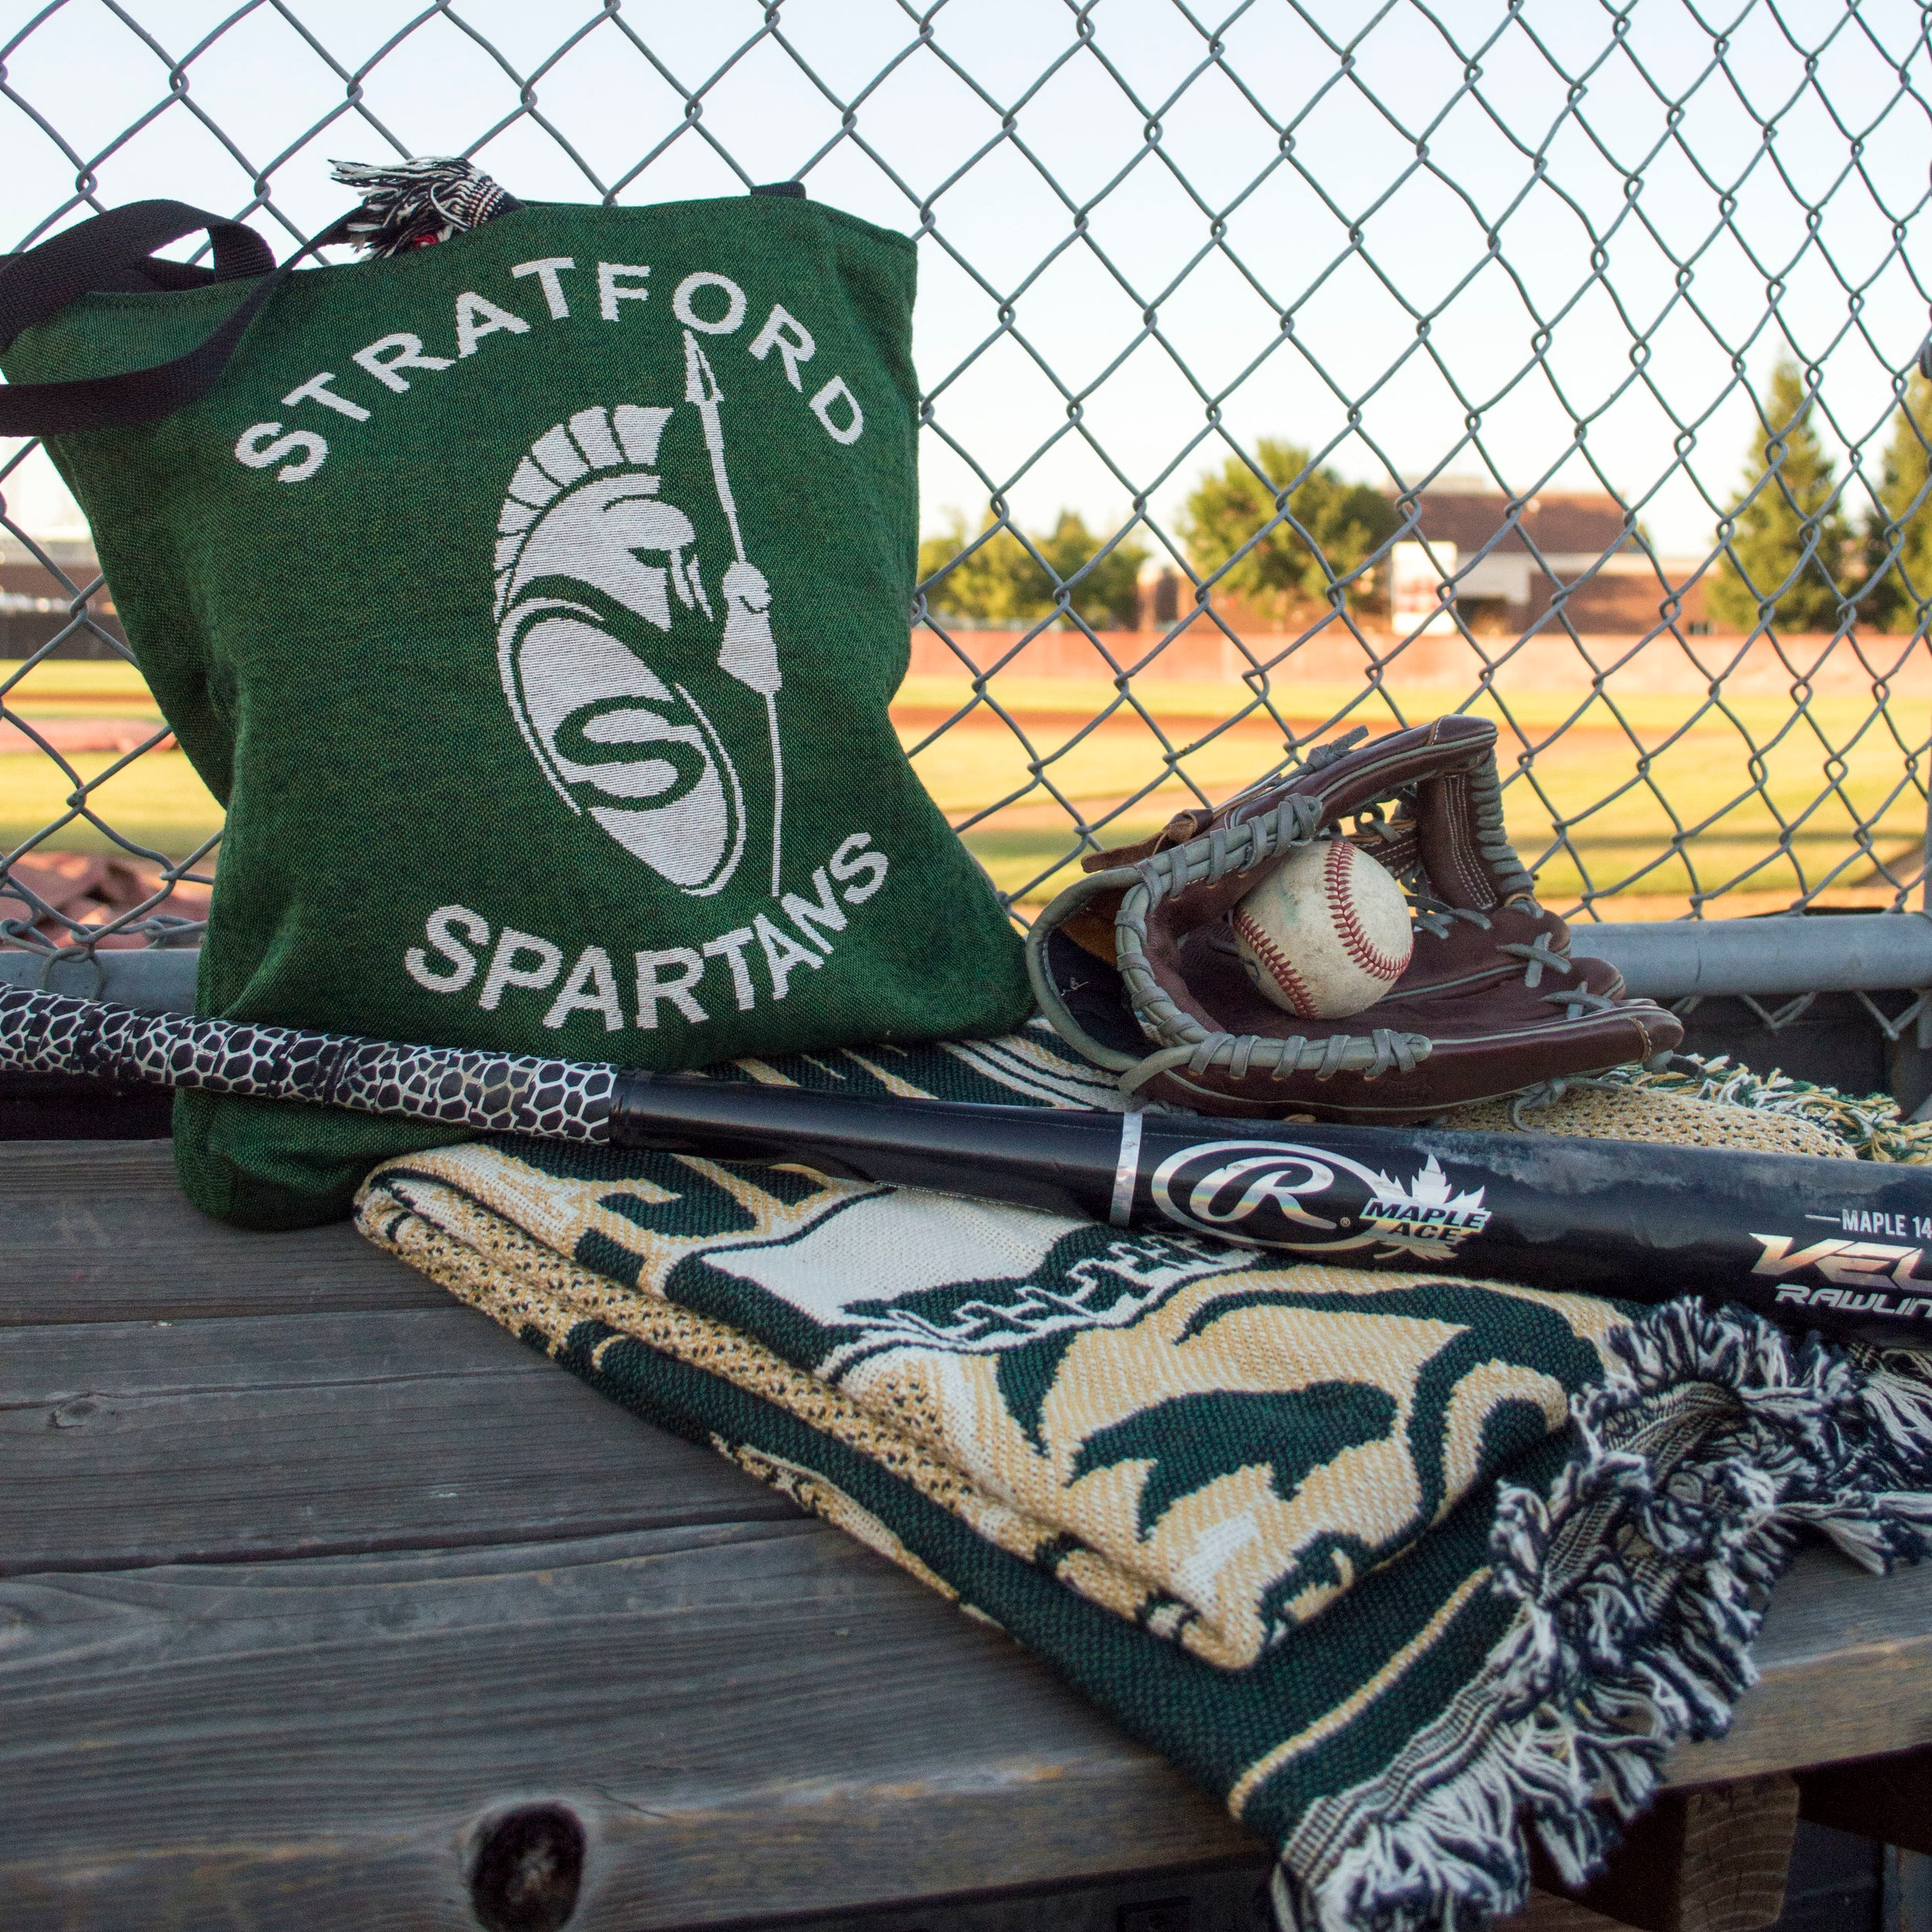 totes & more! - Totes, Scarves and Pillows designed to Support Your TEAM!